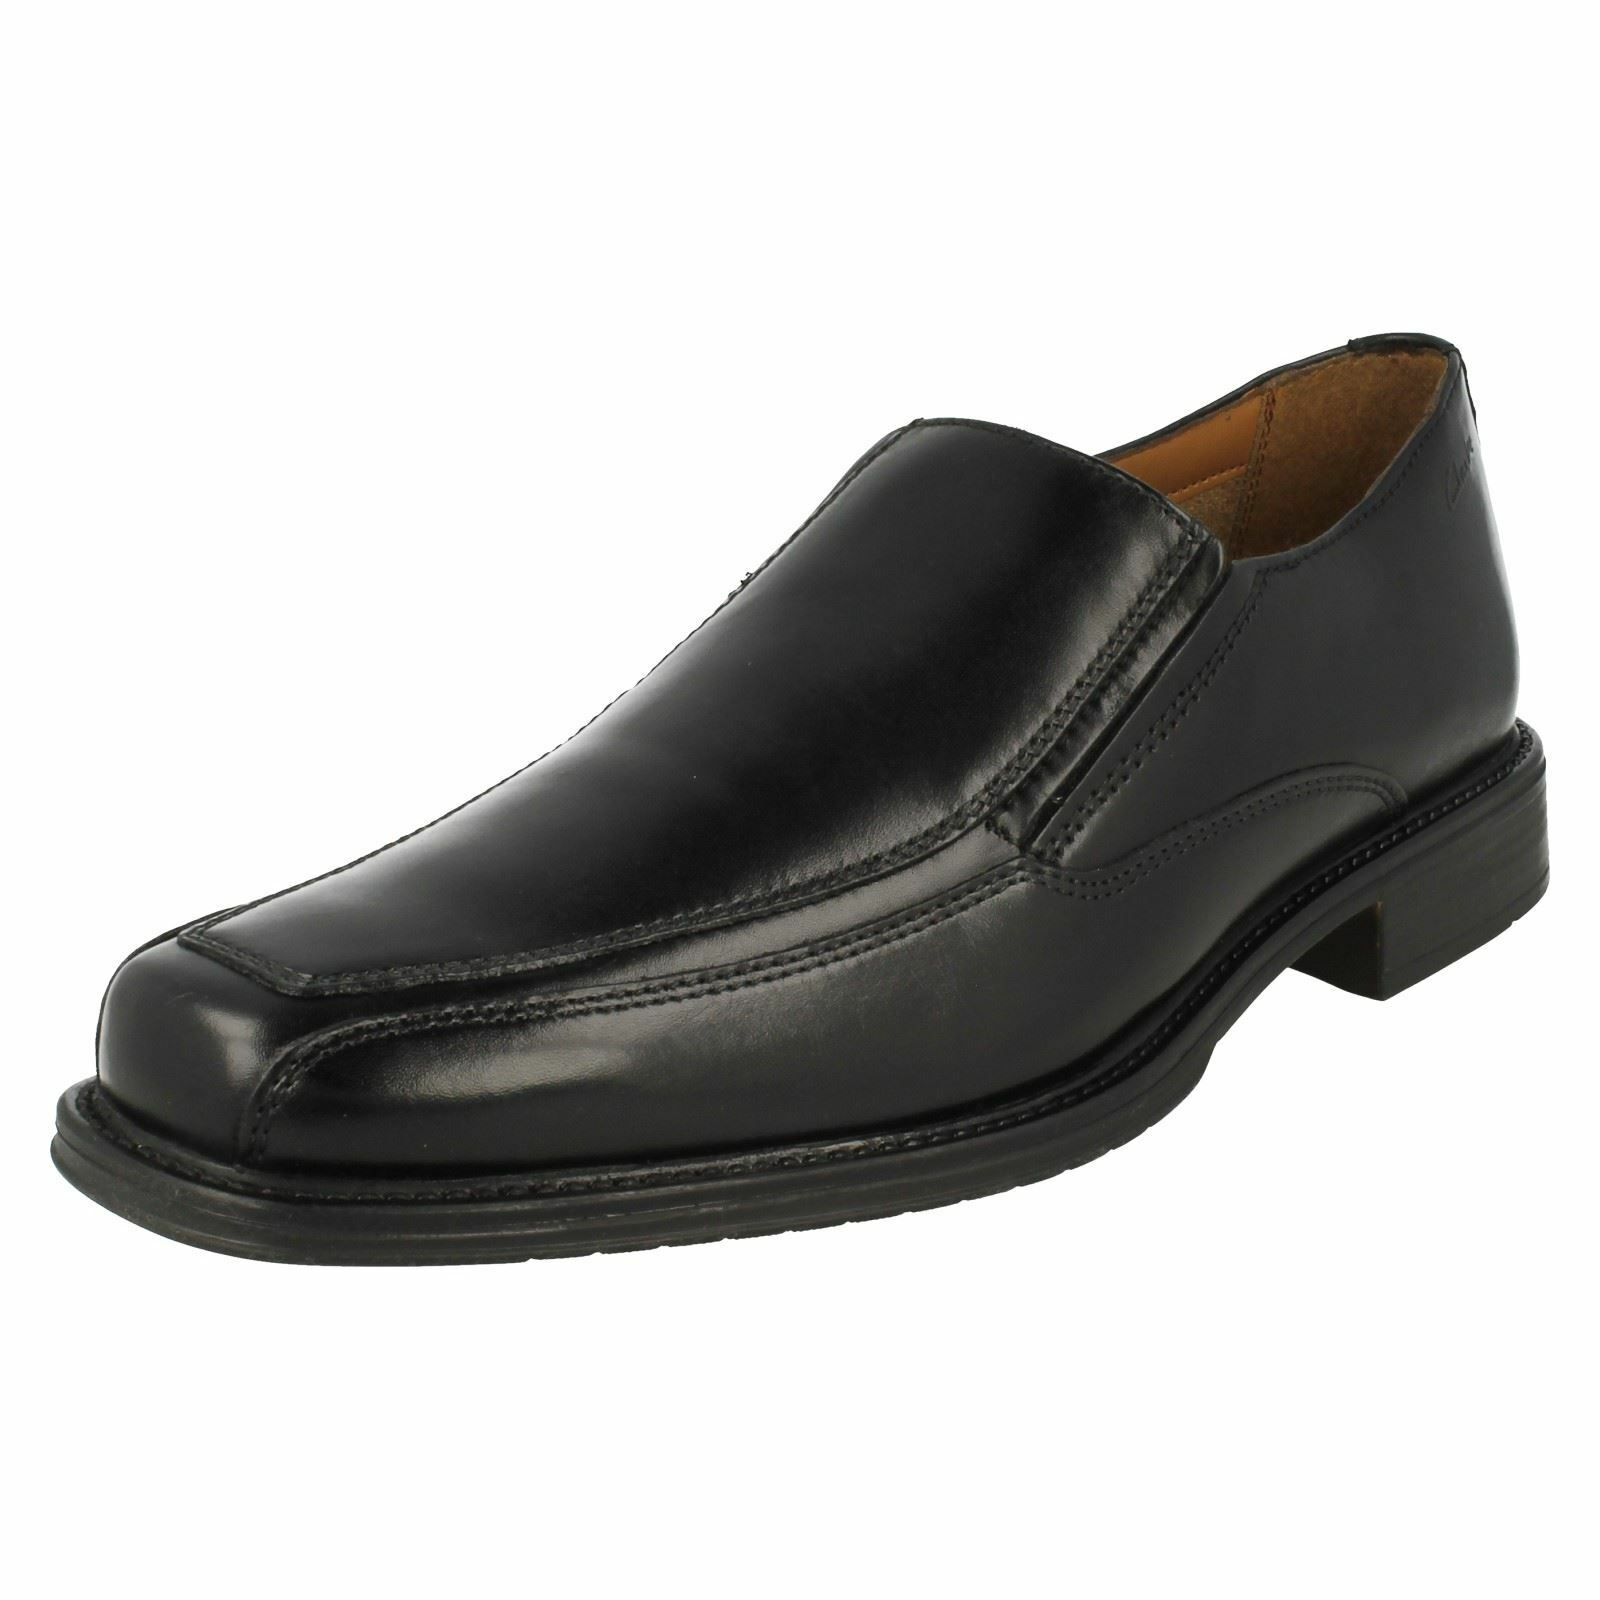 Mens Clarks Formal Slip On Shoes *Driggs Free*